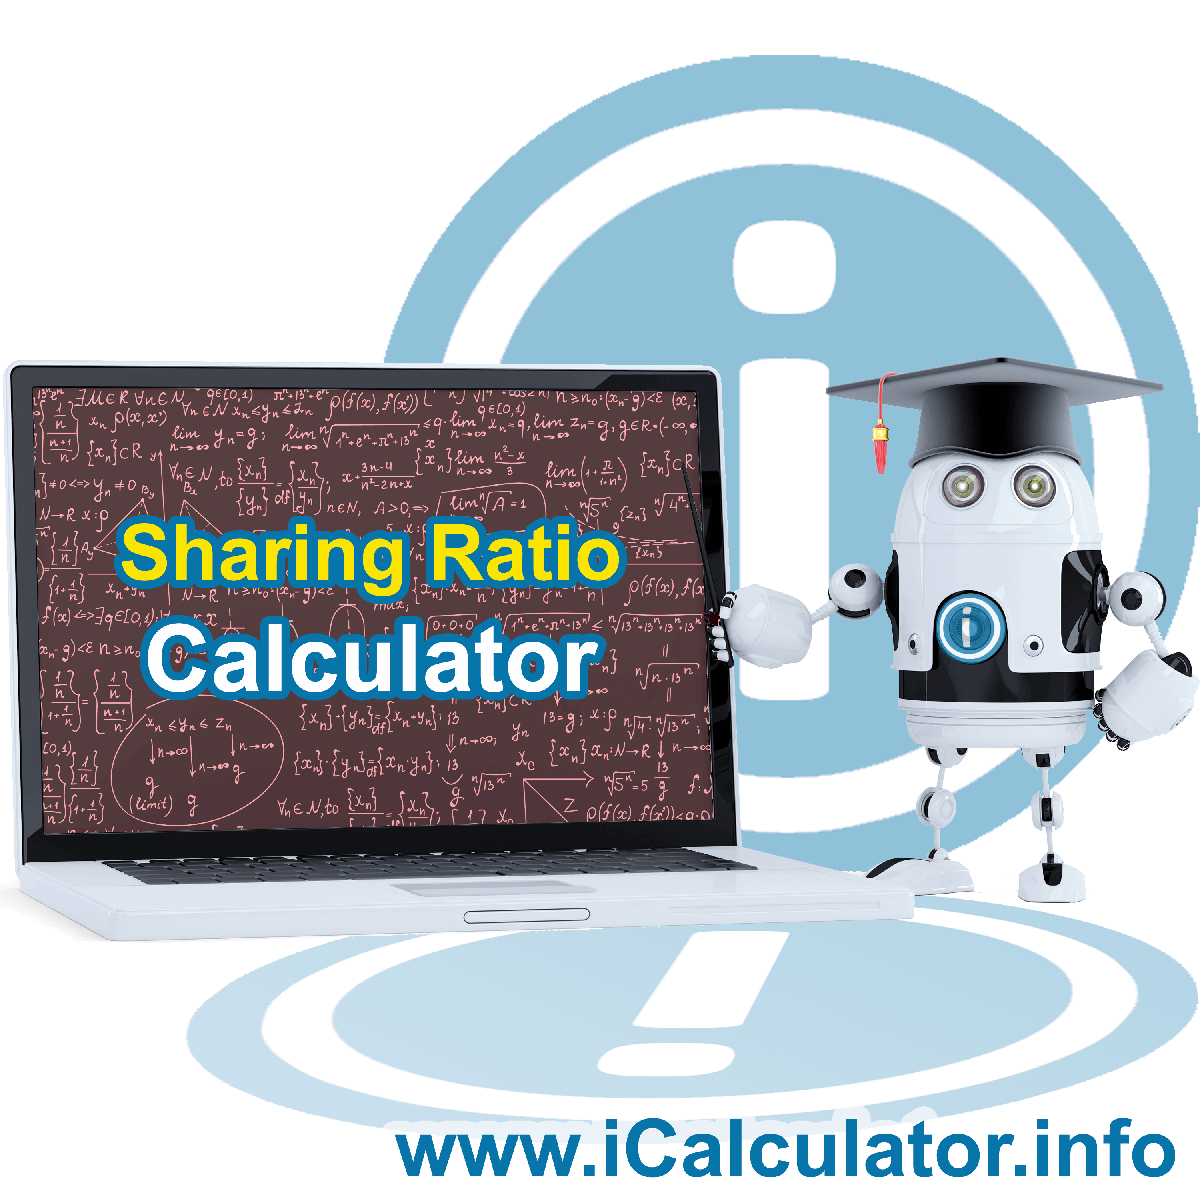 Sharing Ratio. This image shows the properties and sharing ratio formula for the Sharing Ratio